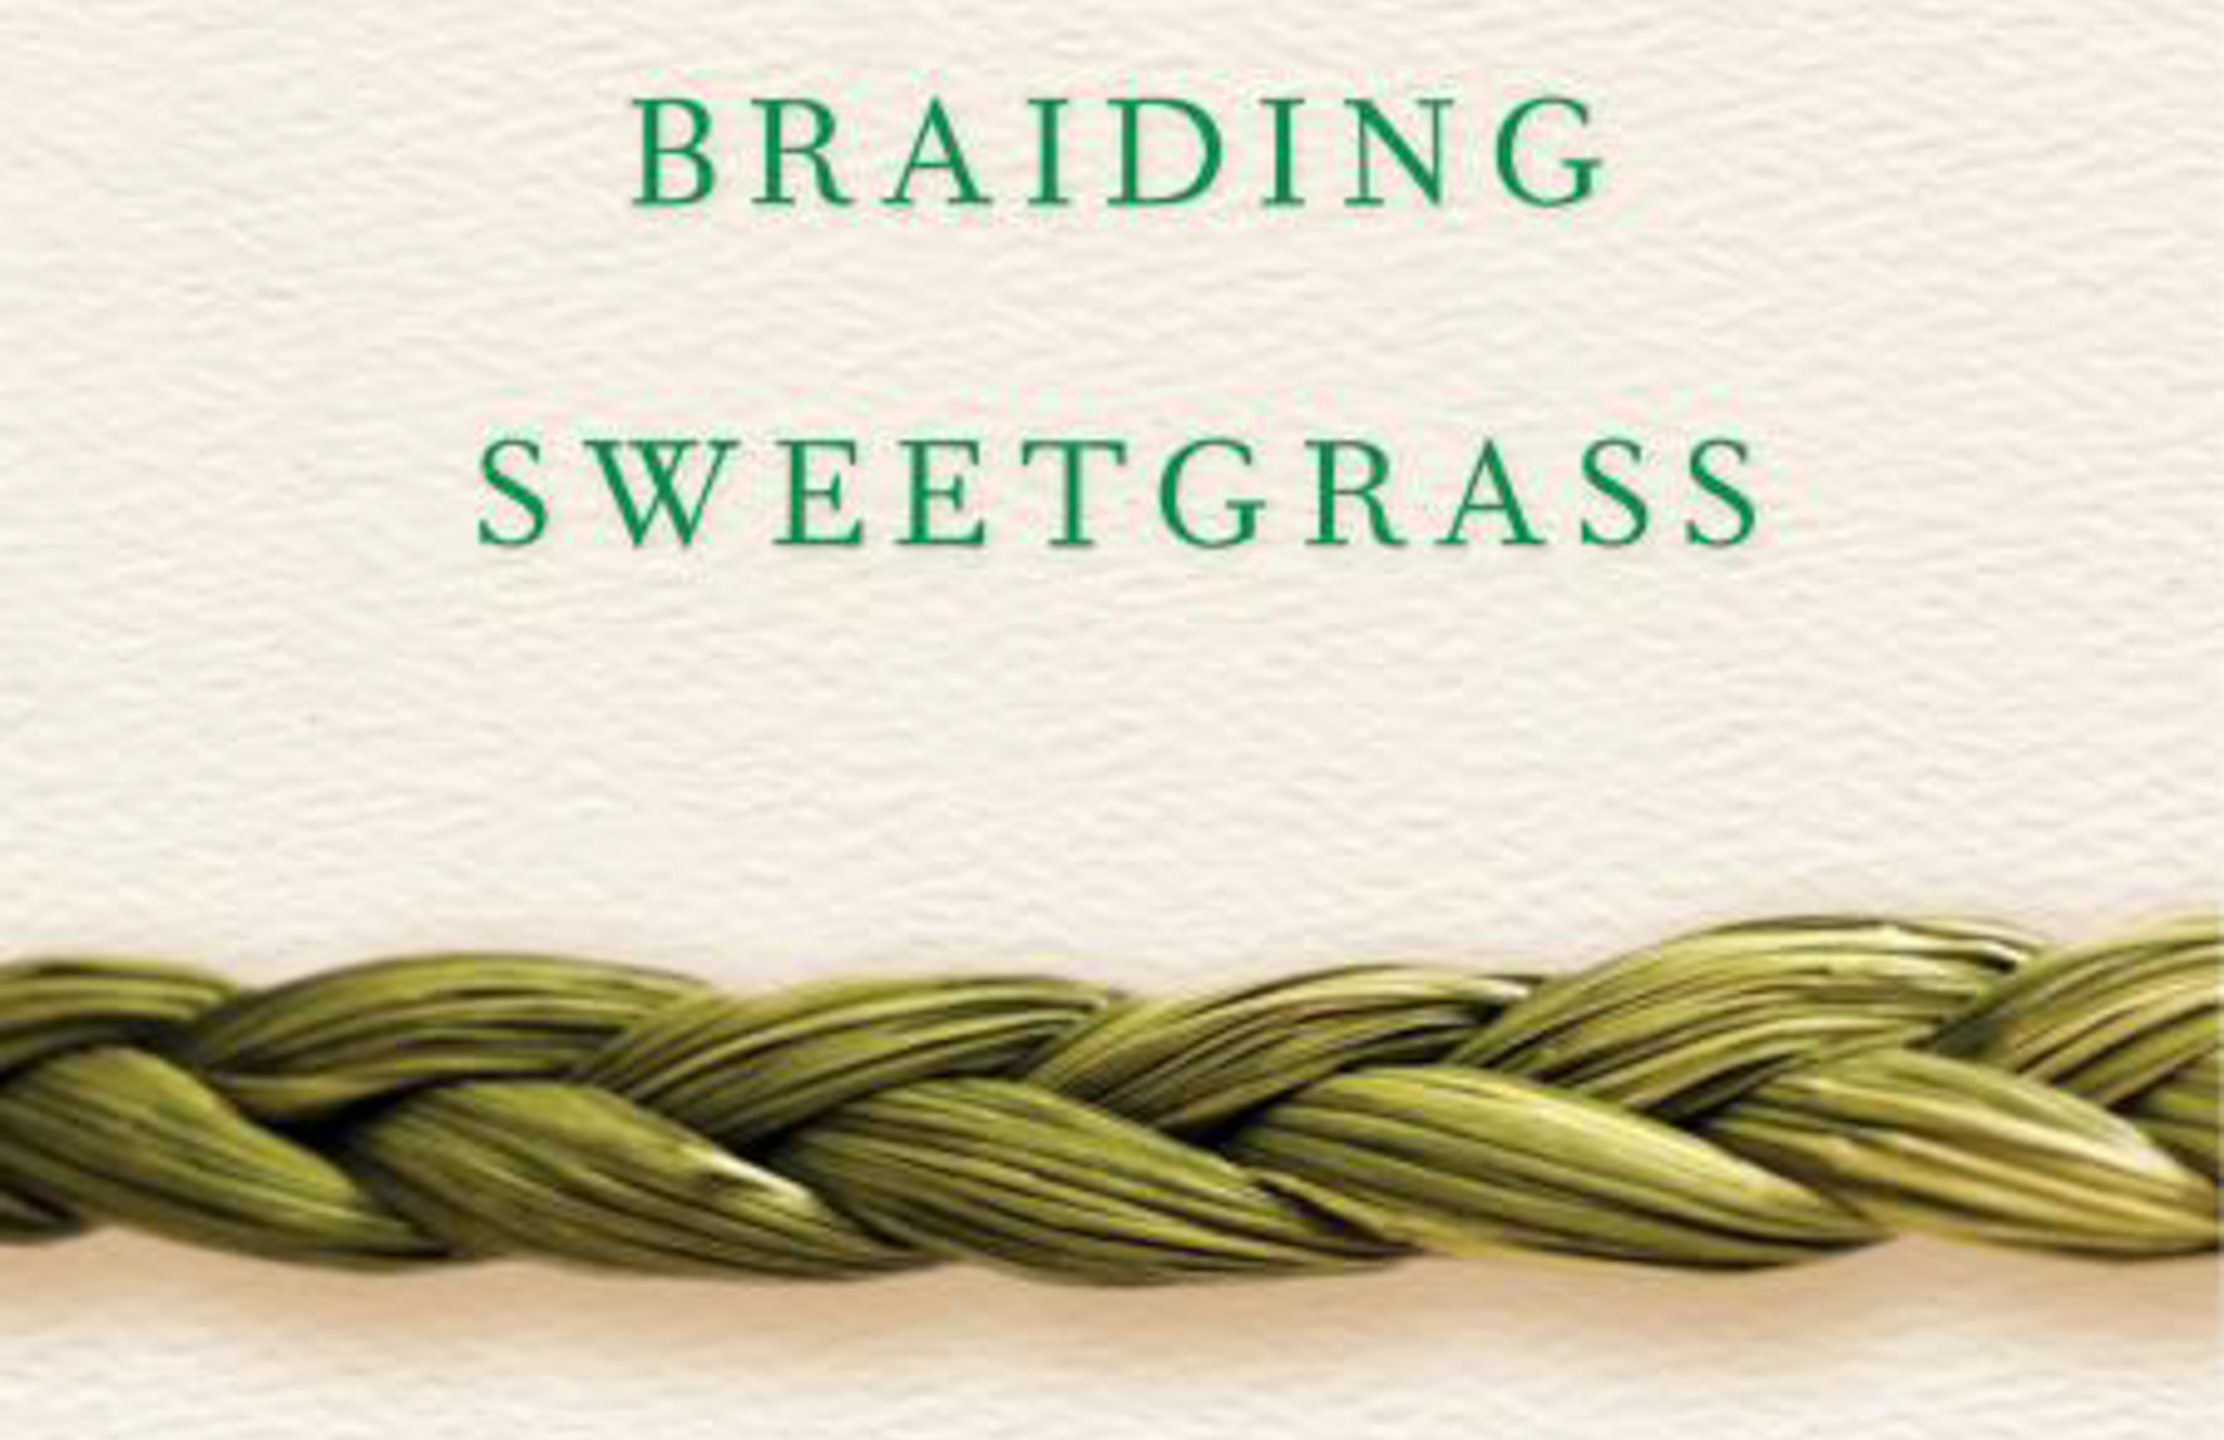 Braiding Sweetgrass: Book Review